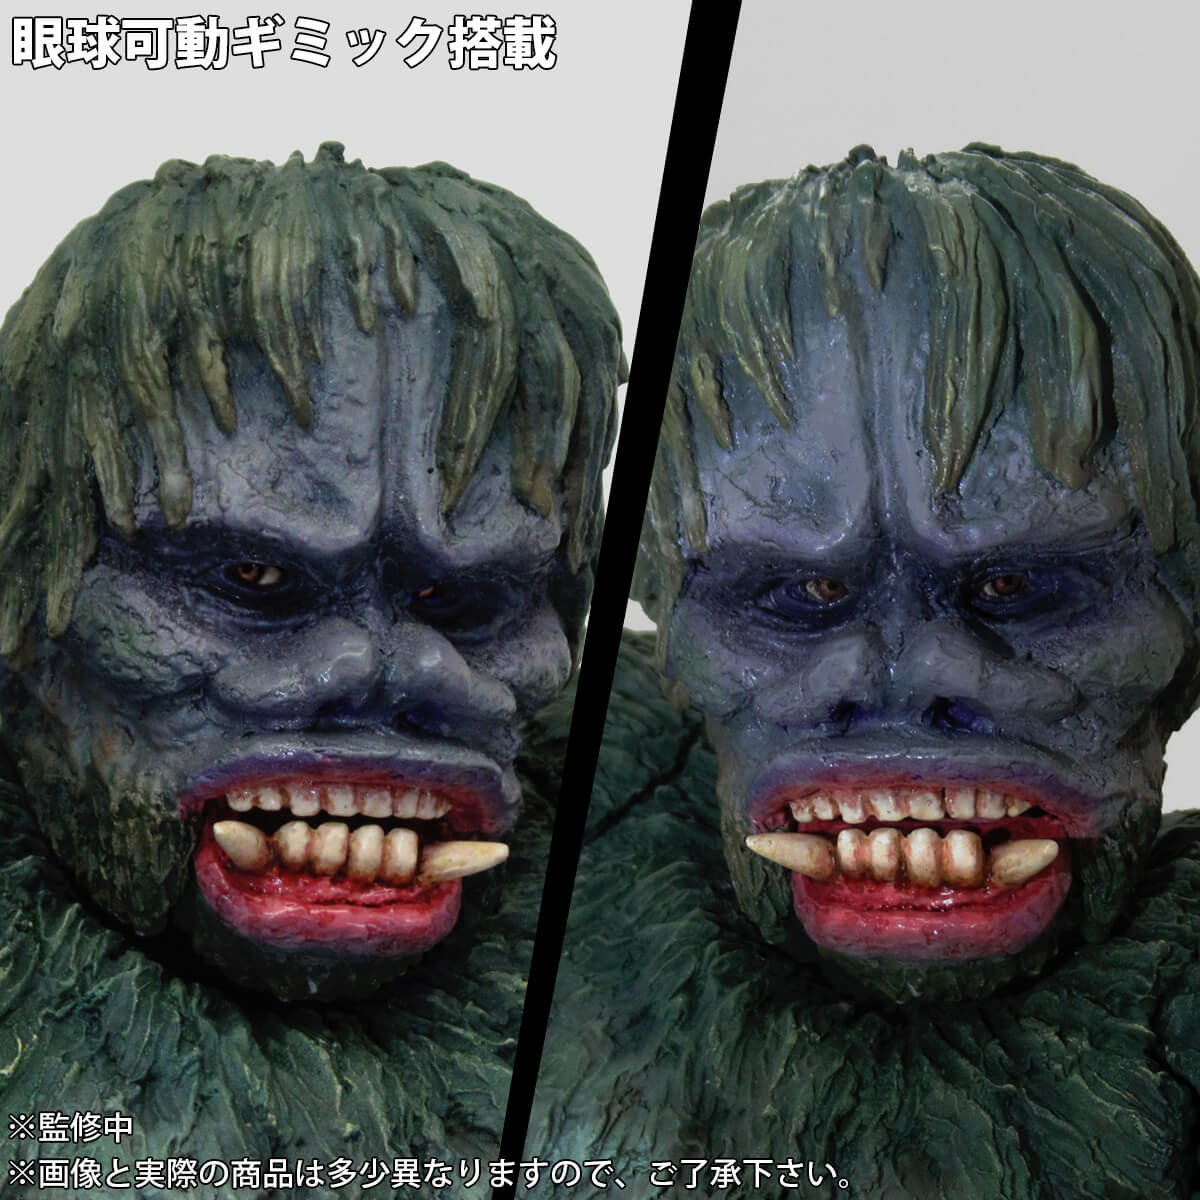 Toho Large Monster Series Sanda vs. Guyra Shonen Rick Limited Edition 15